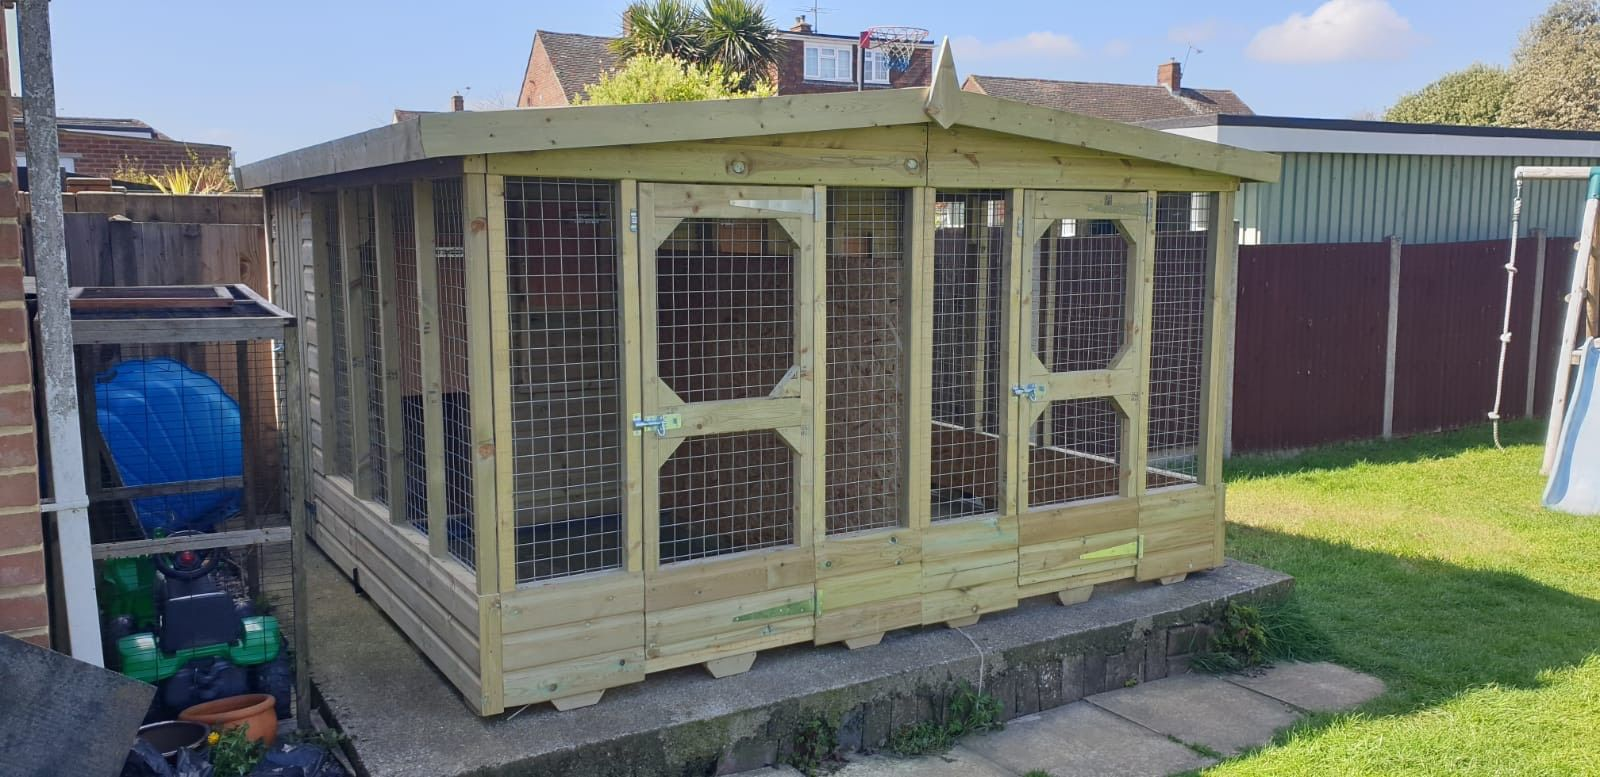 Police dog kennel (1)